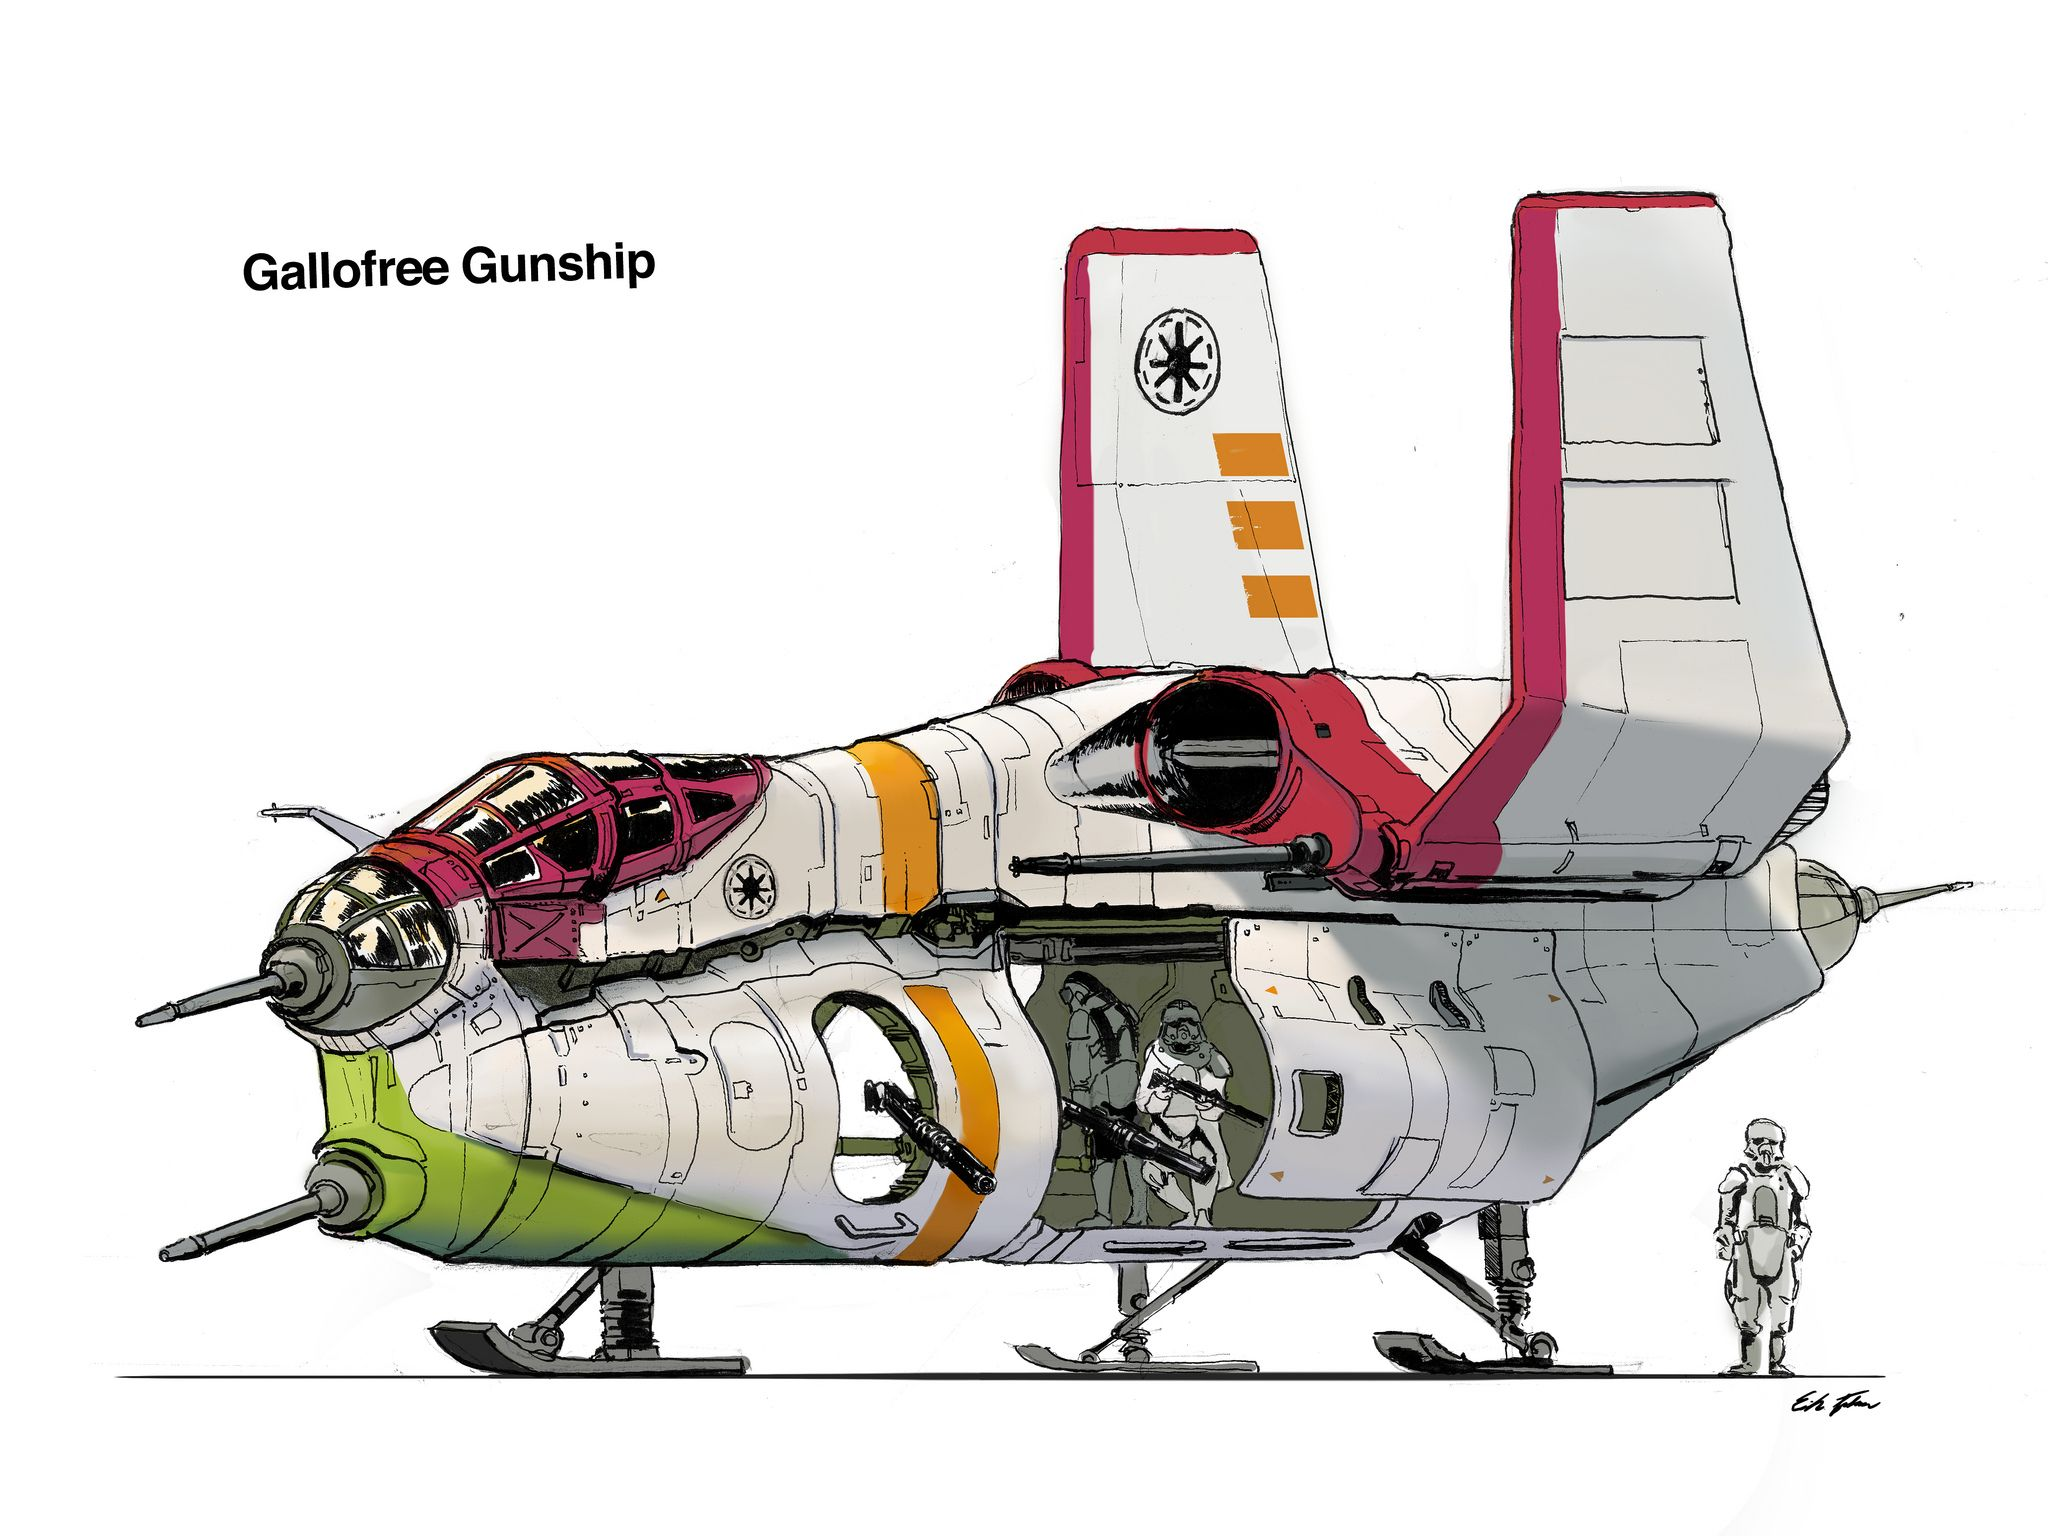 Gallofree gunship troops for Design attack